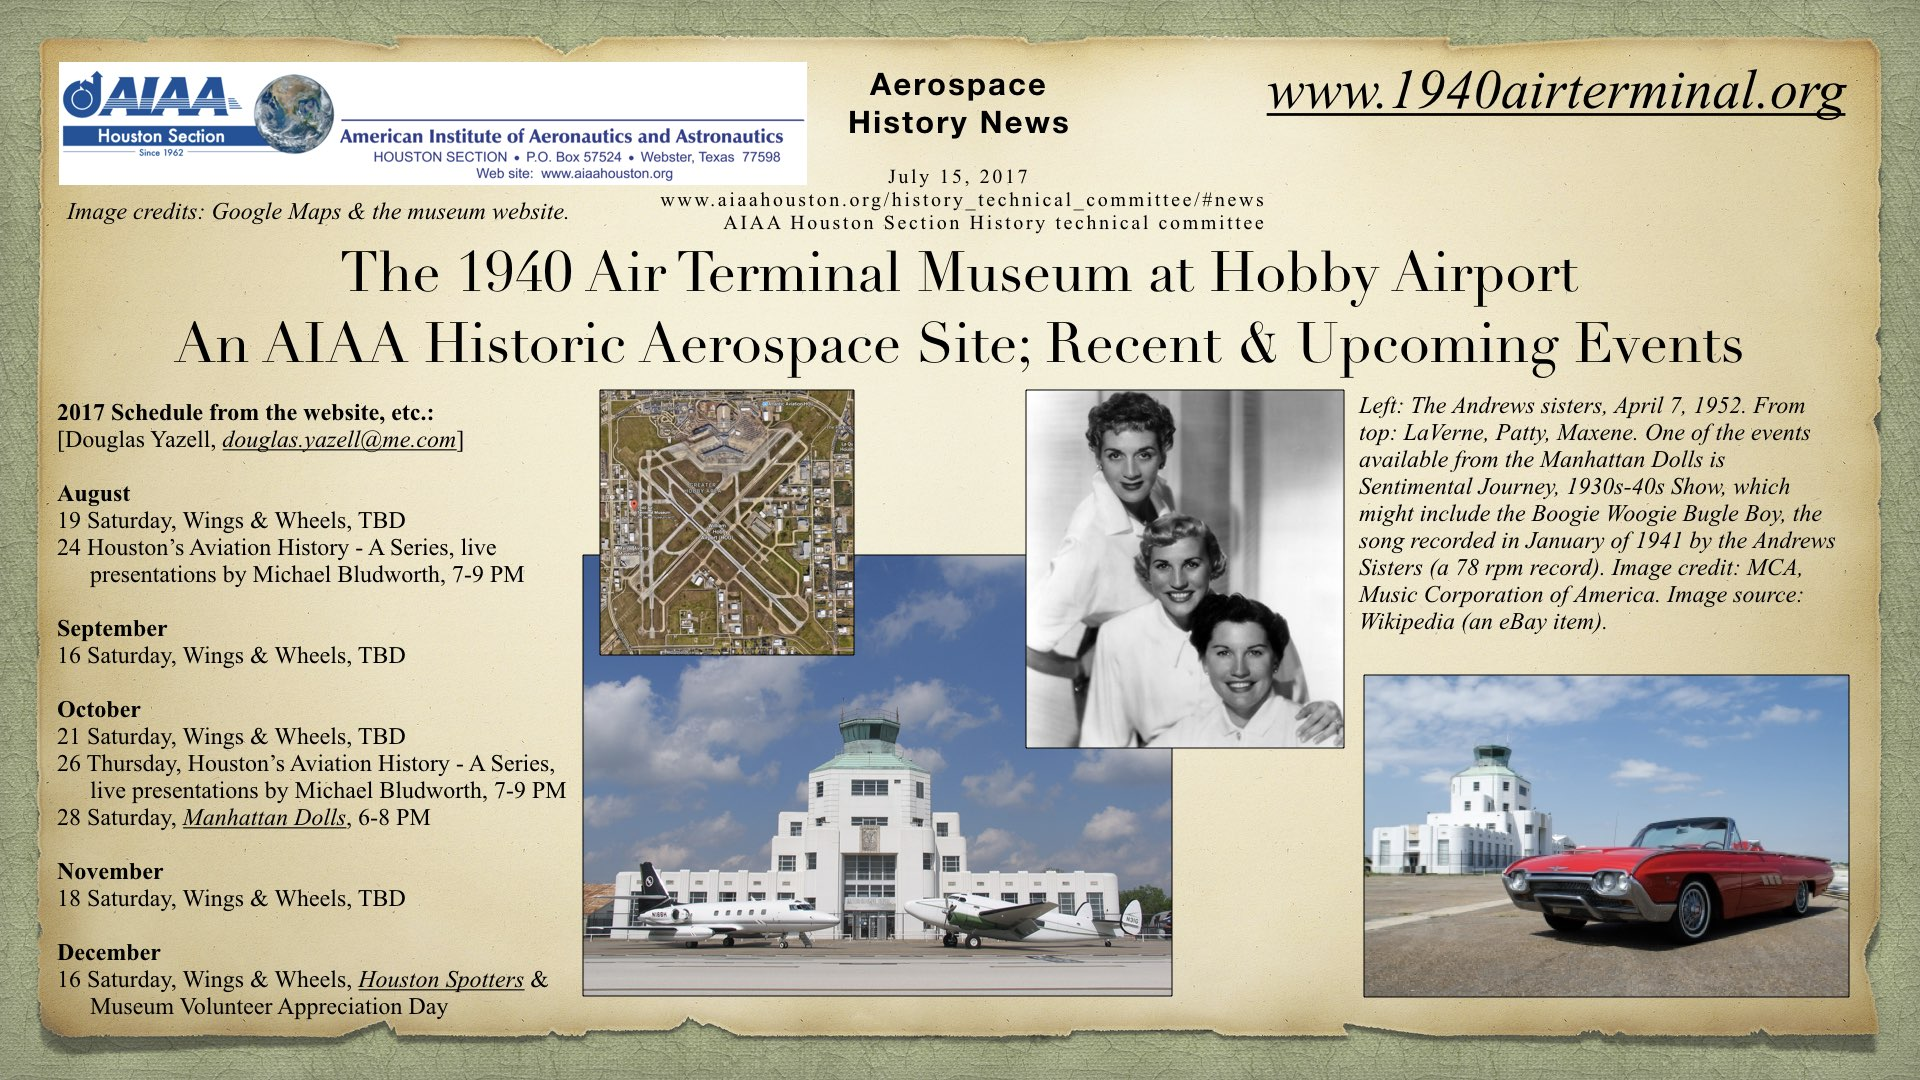 Above: The 1940 Air Terminal Museum at Hobby Airport, an AIAA Historic Aerospace Site. Recent & upcoming events. (Click to zoom.)